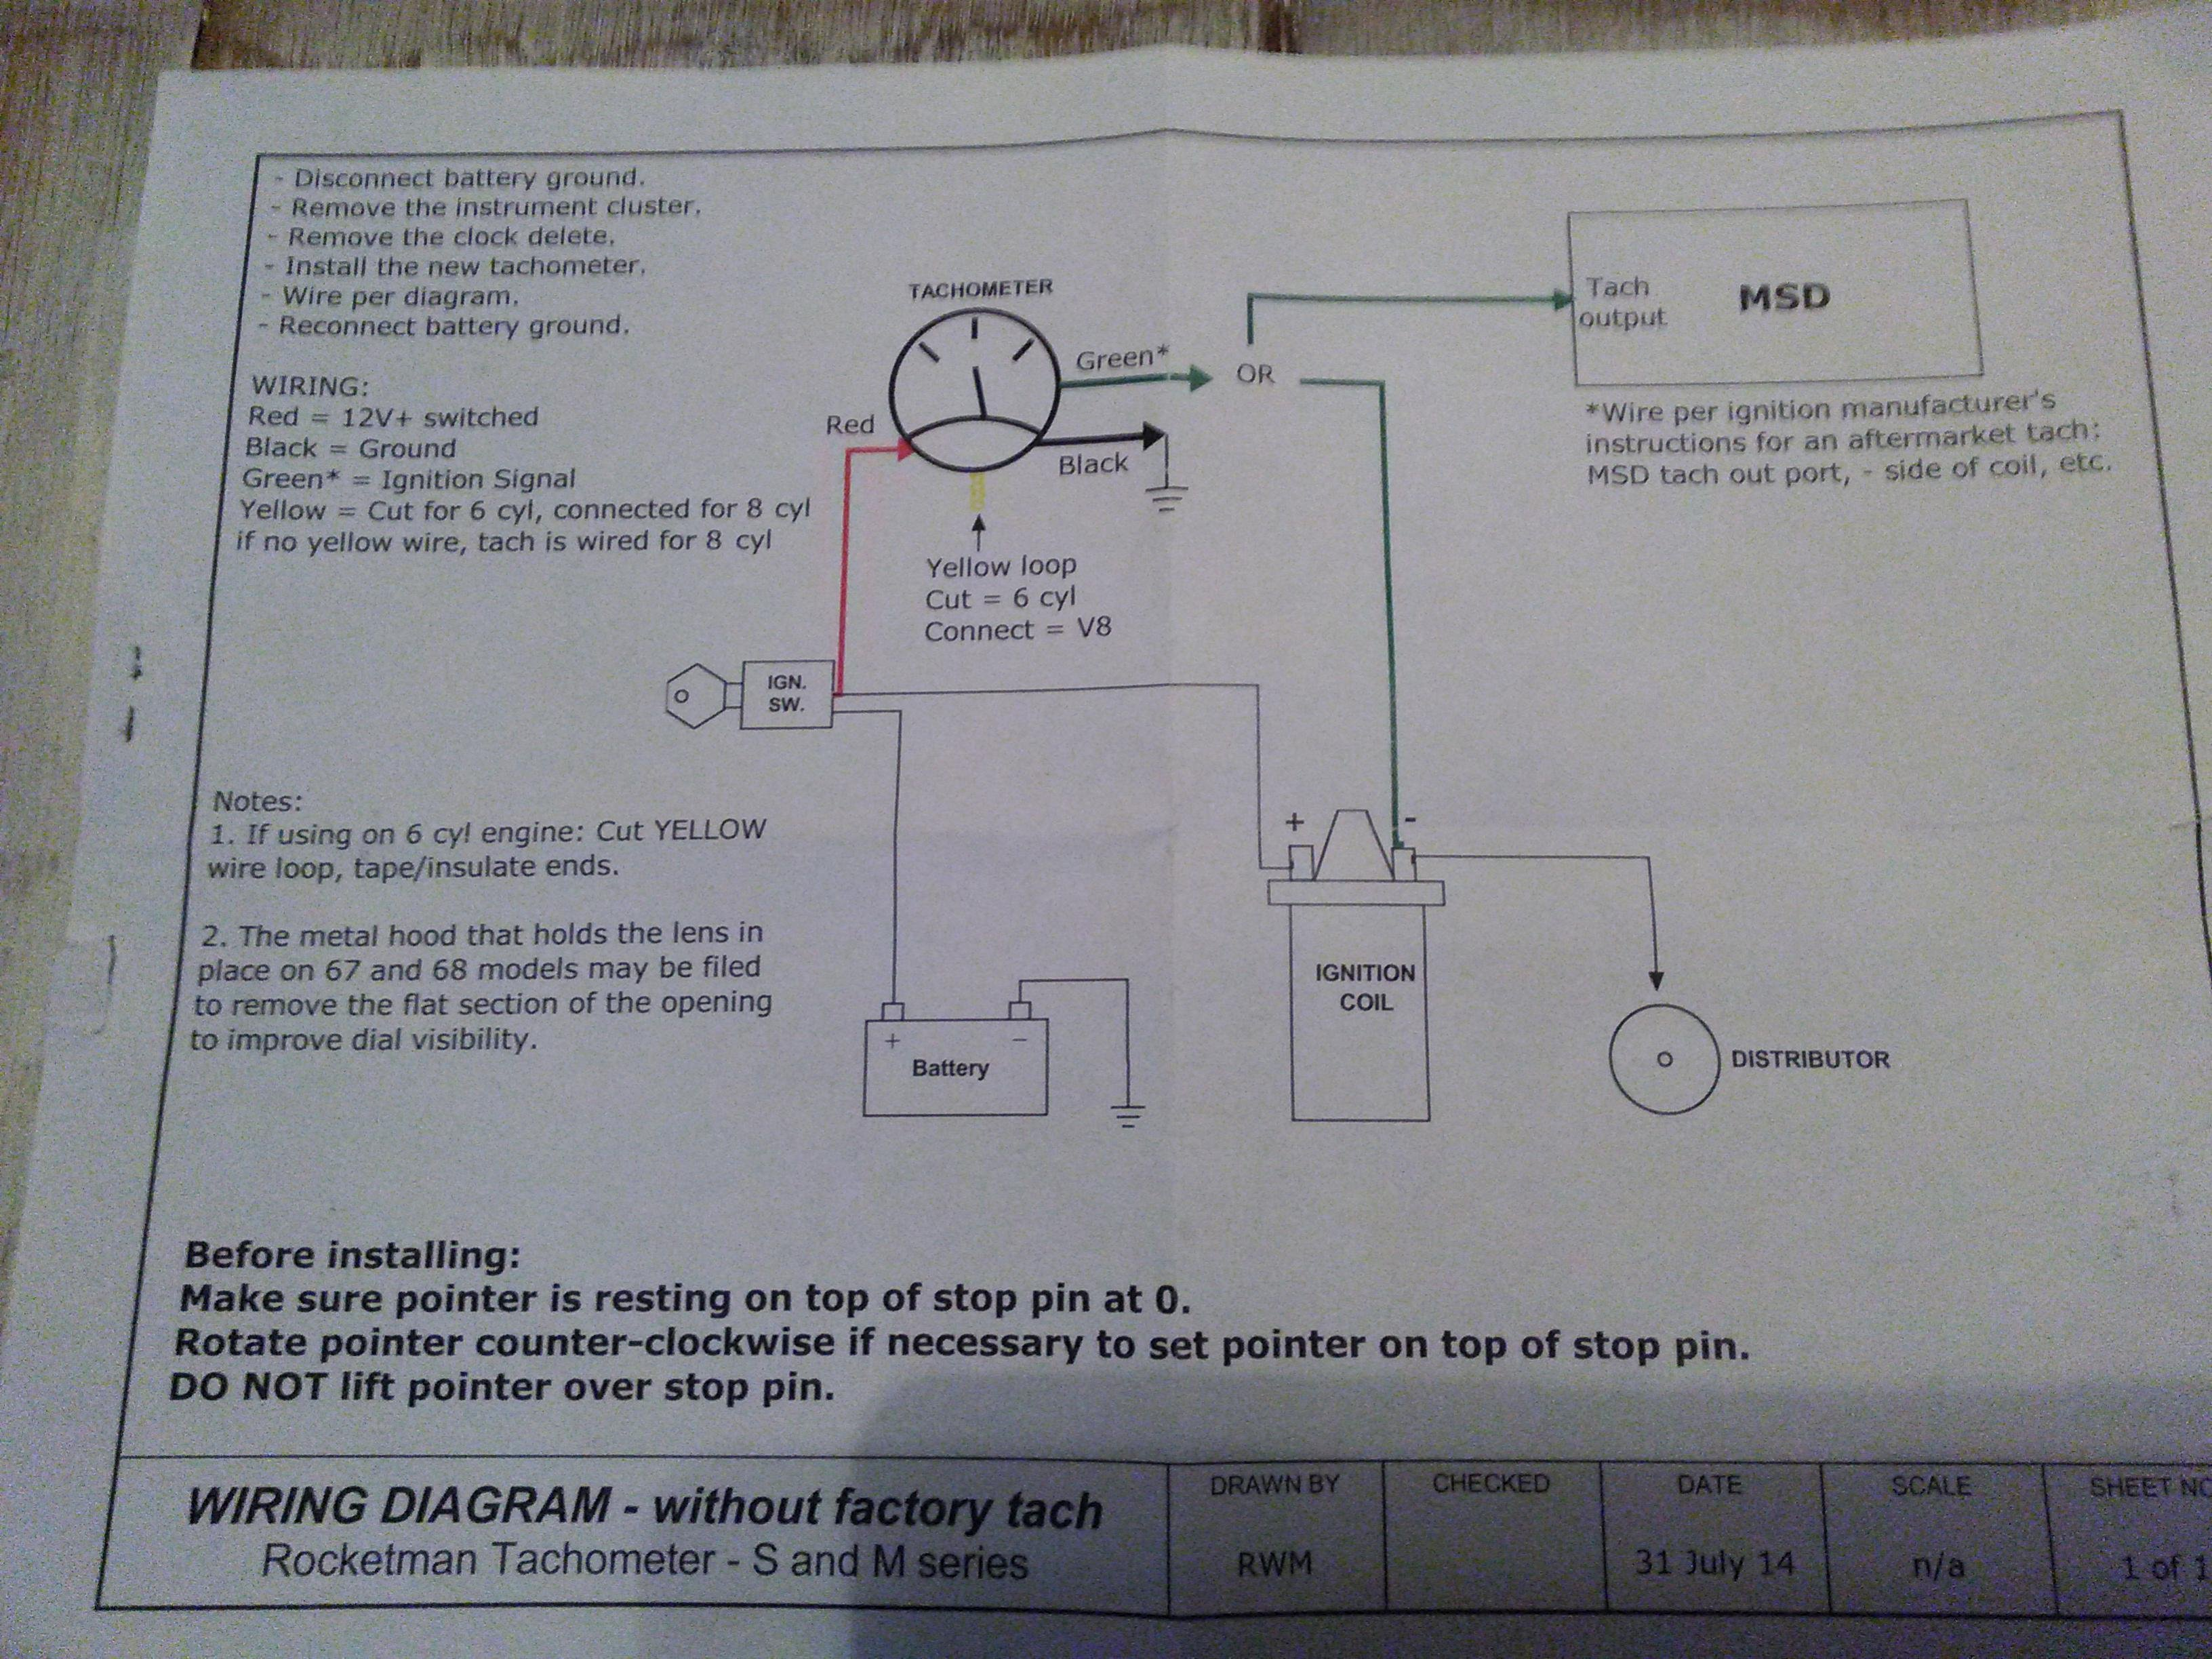 Wiring Diagram For 1966 Dodge Power Wagon Trusted Diagrams 1960 Aftermarket Tach Ford Mustang Circuit